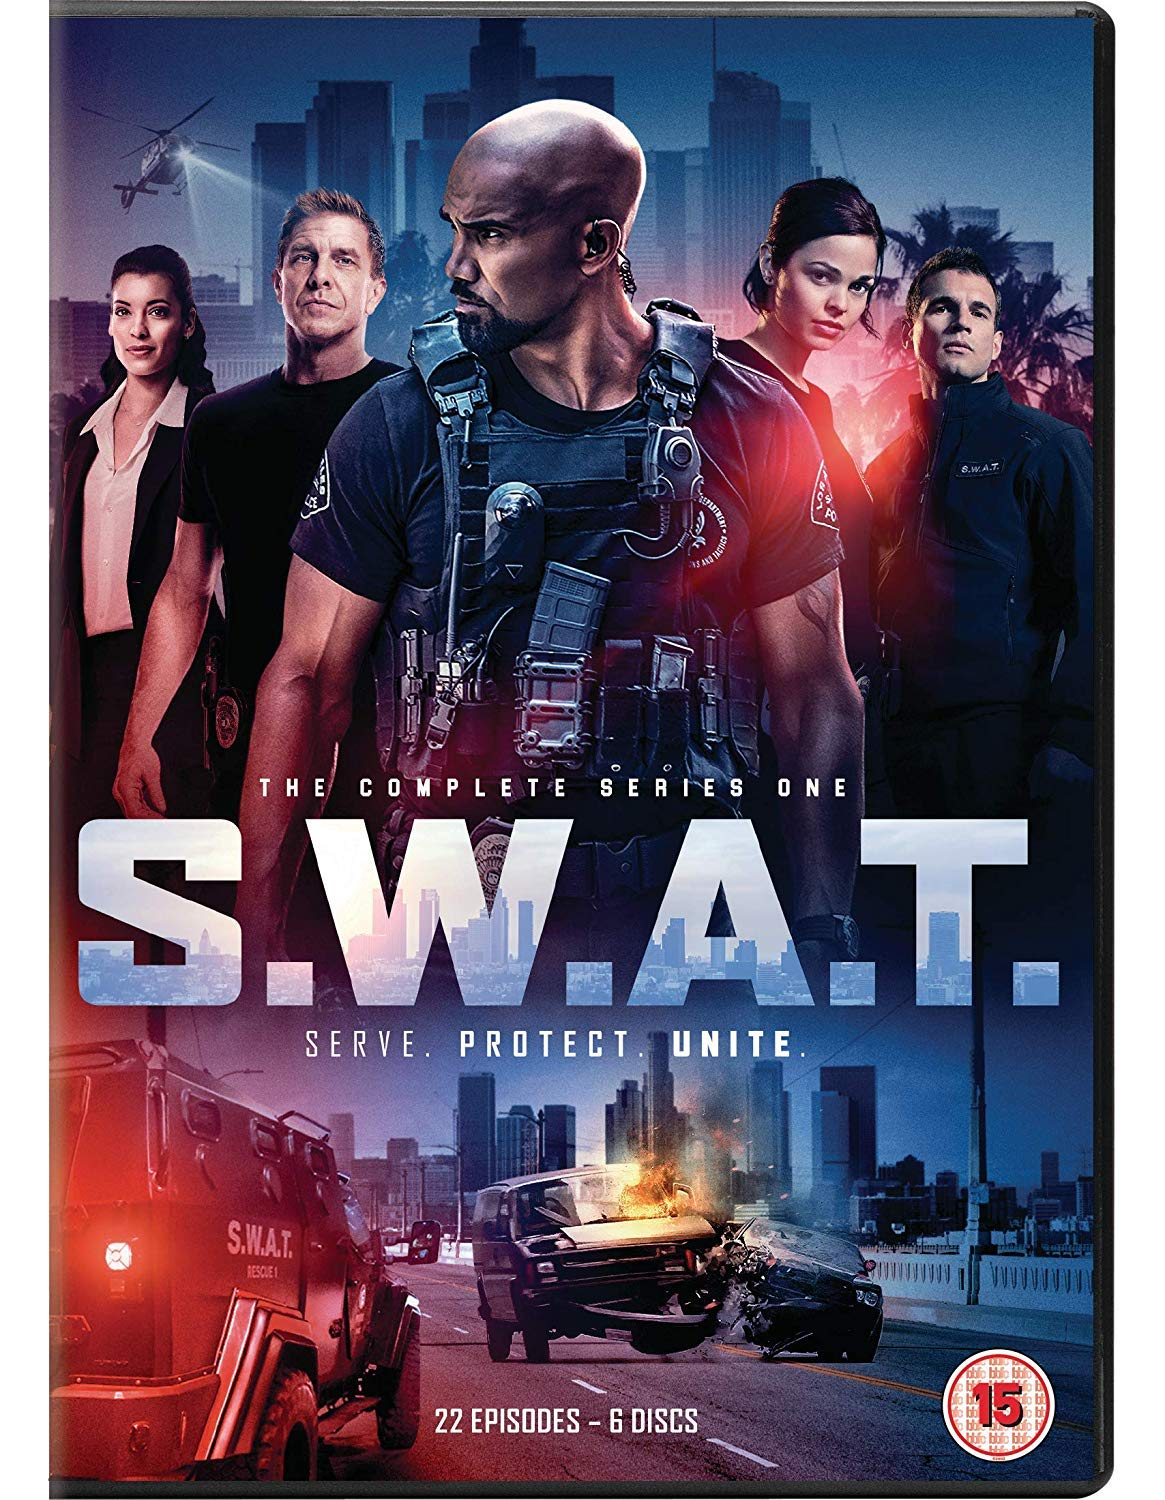 S.W.A.T (2019) English 720p HDRip 900MB KSubs